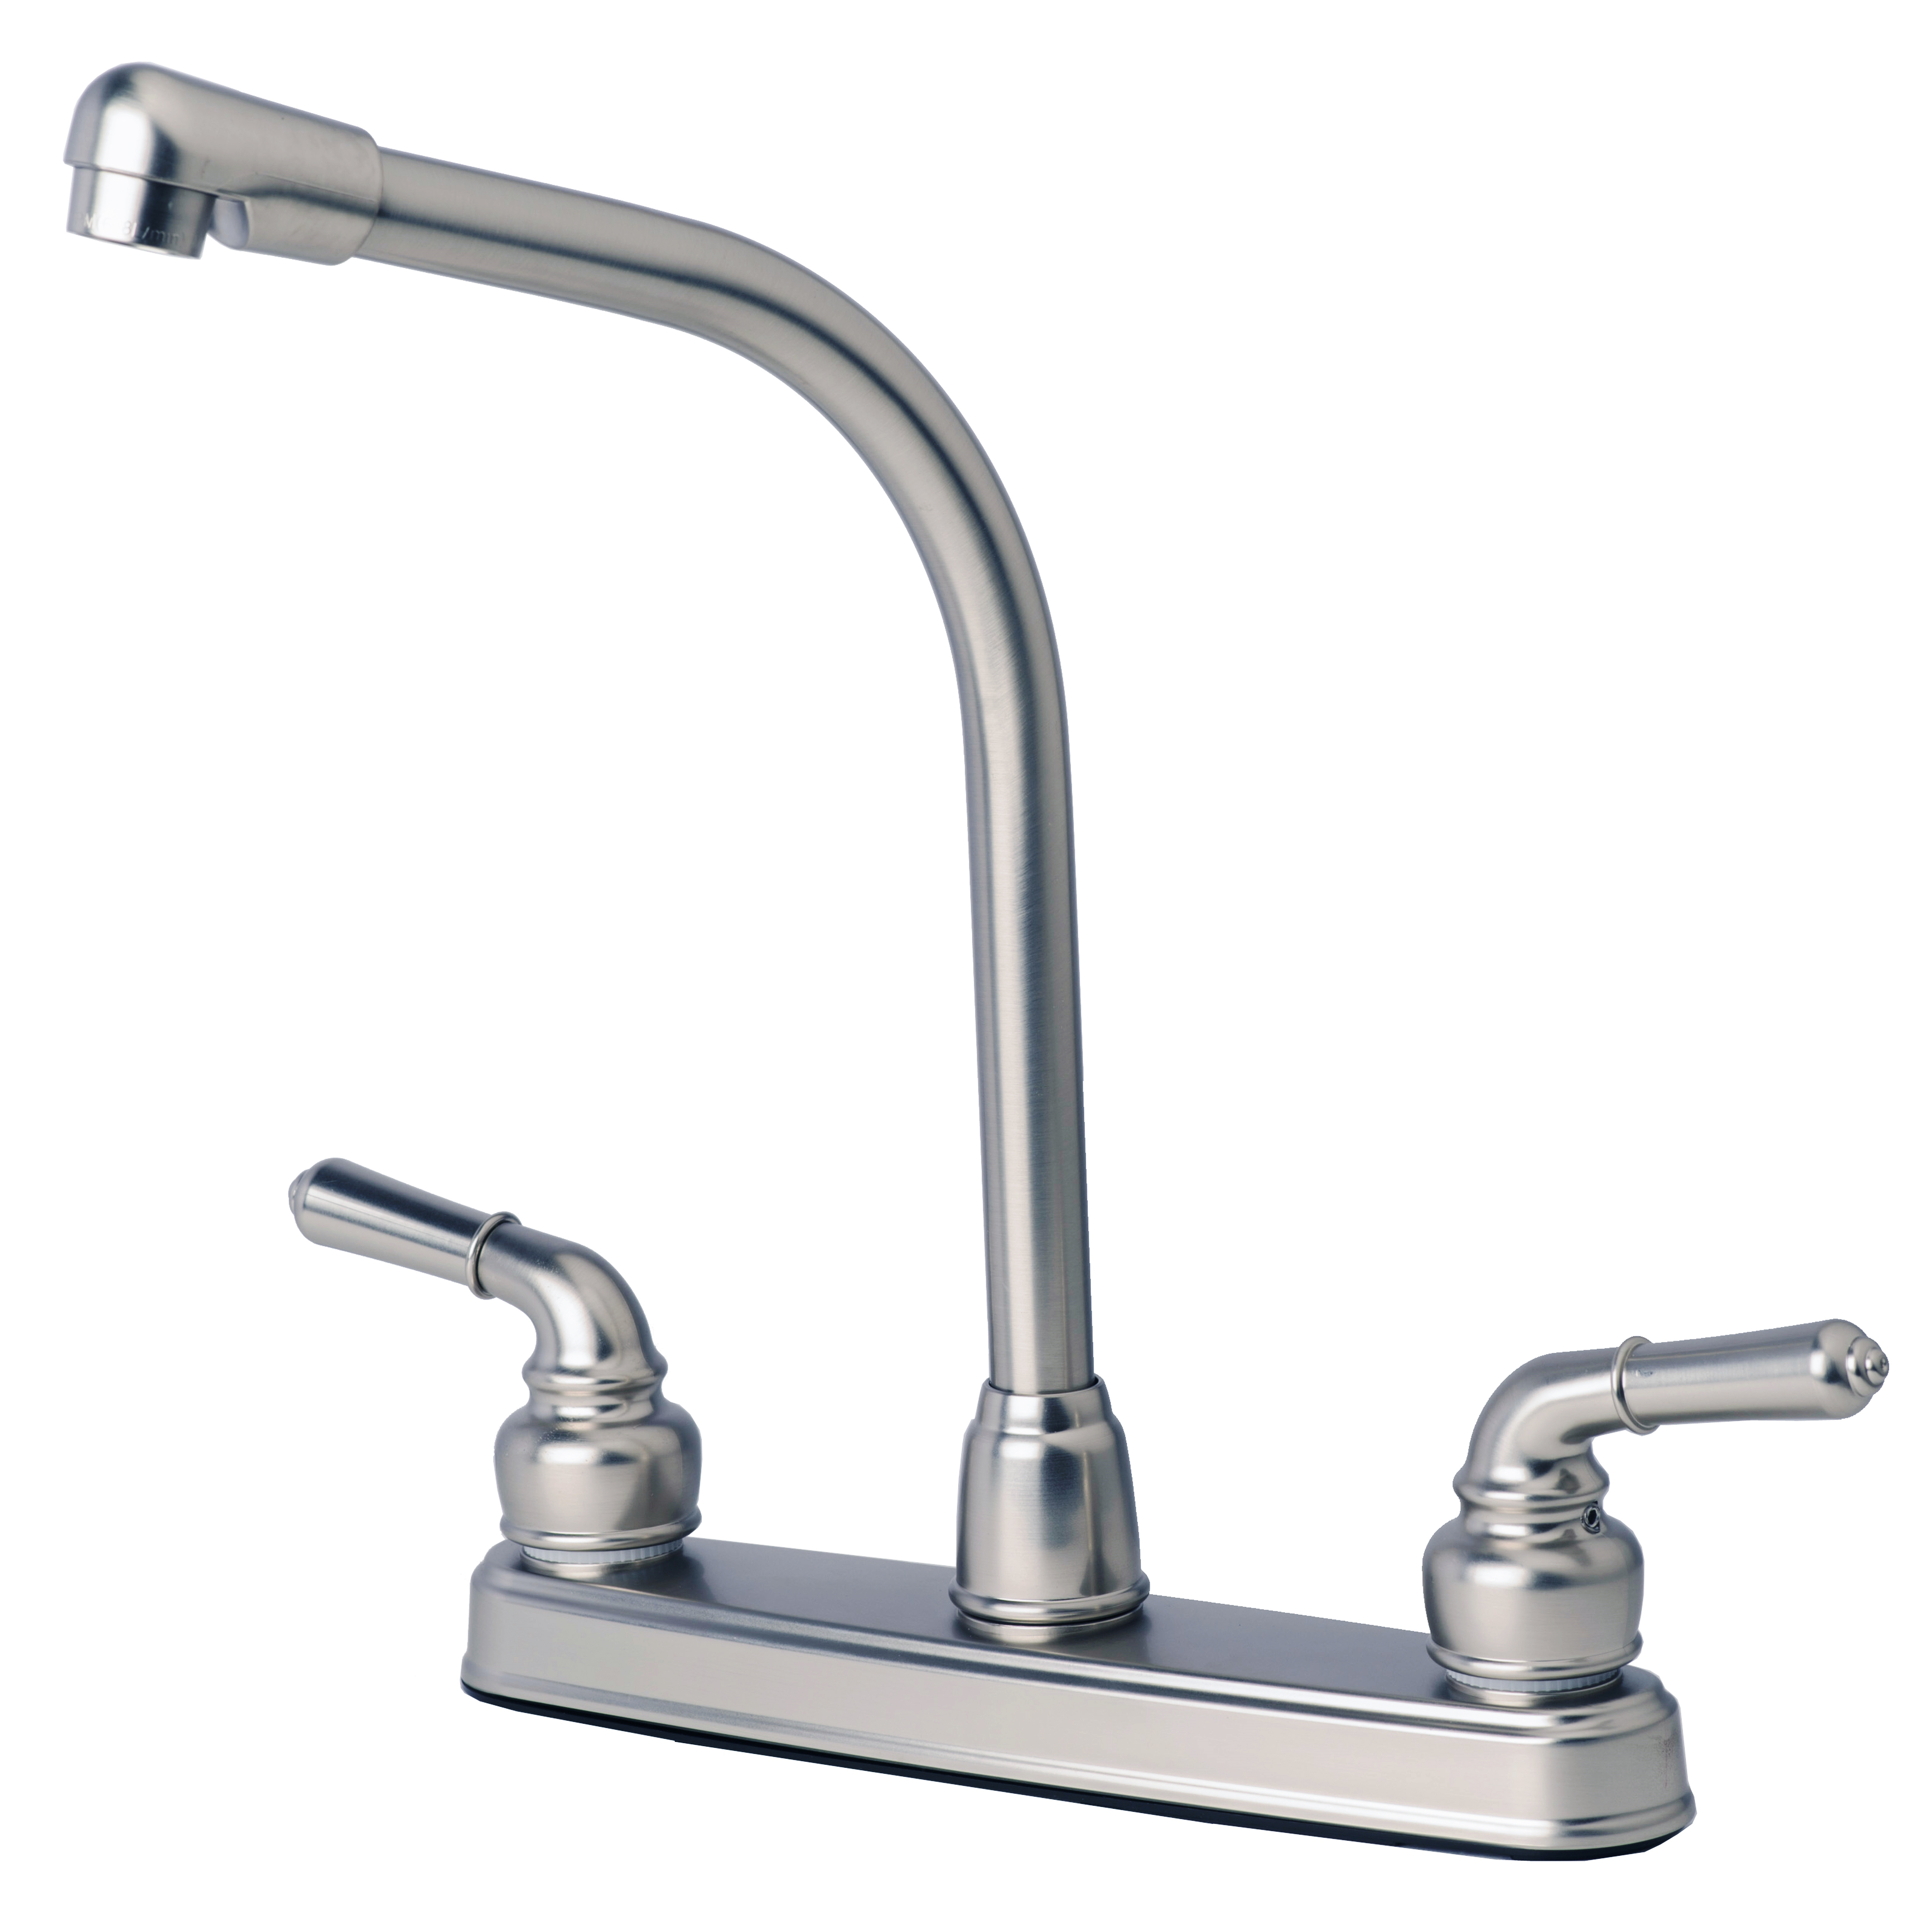 1200SS Mobile Home Sink Faucet on mobile home tubing, mobile home water softeners, mobile home humidifiers, mobile home drains, mobile home locks, mobile home sewer lines, mobile home telephones, mobile home hvac, mobile home fasteners, mobile home glass, mobile home lamps, mobile home mirrors, mobile home trim, mobile home lights, mobile home fittings, mobile home parts, mobile home tools, mobile home filters, mobile home gas, mobile home electrical,